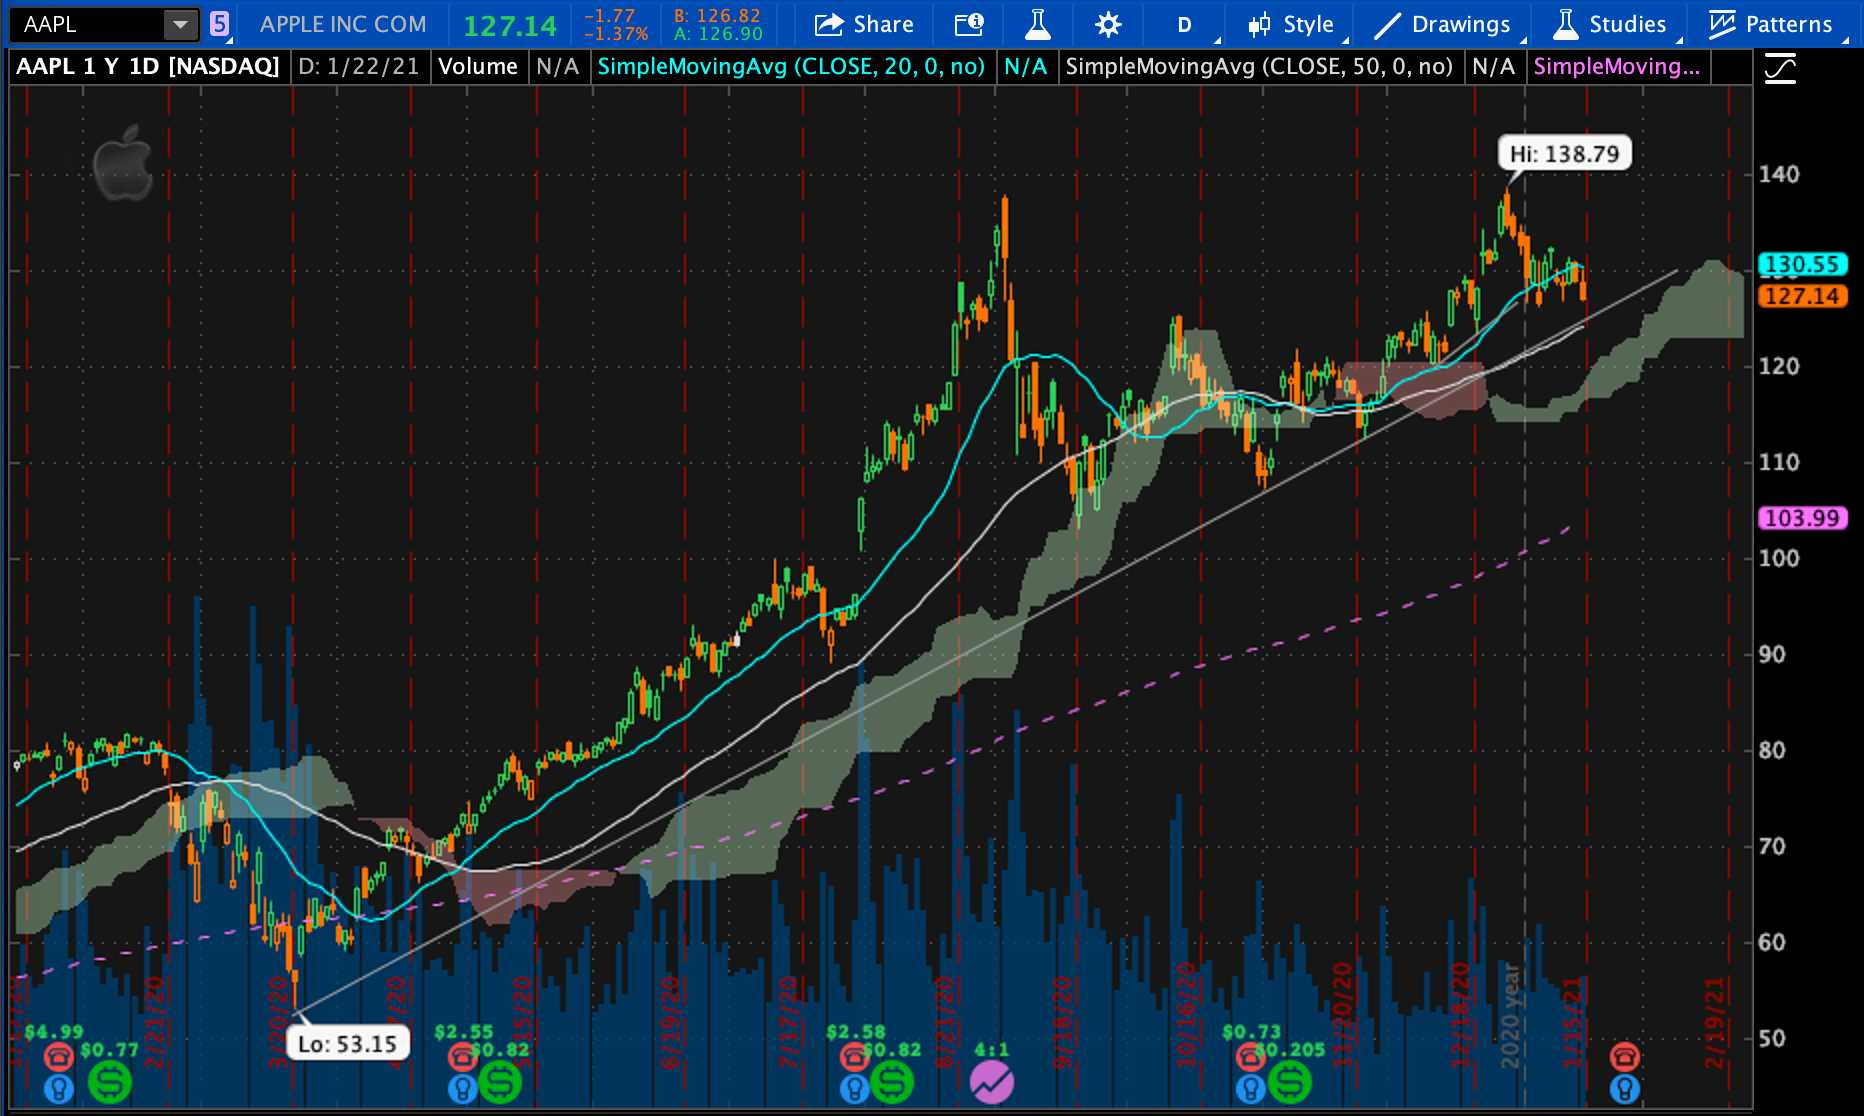 AAPL: My Technical Analysis on Apple Stock